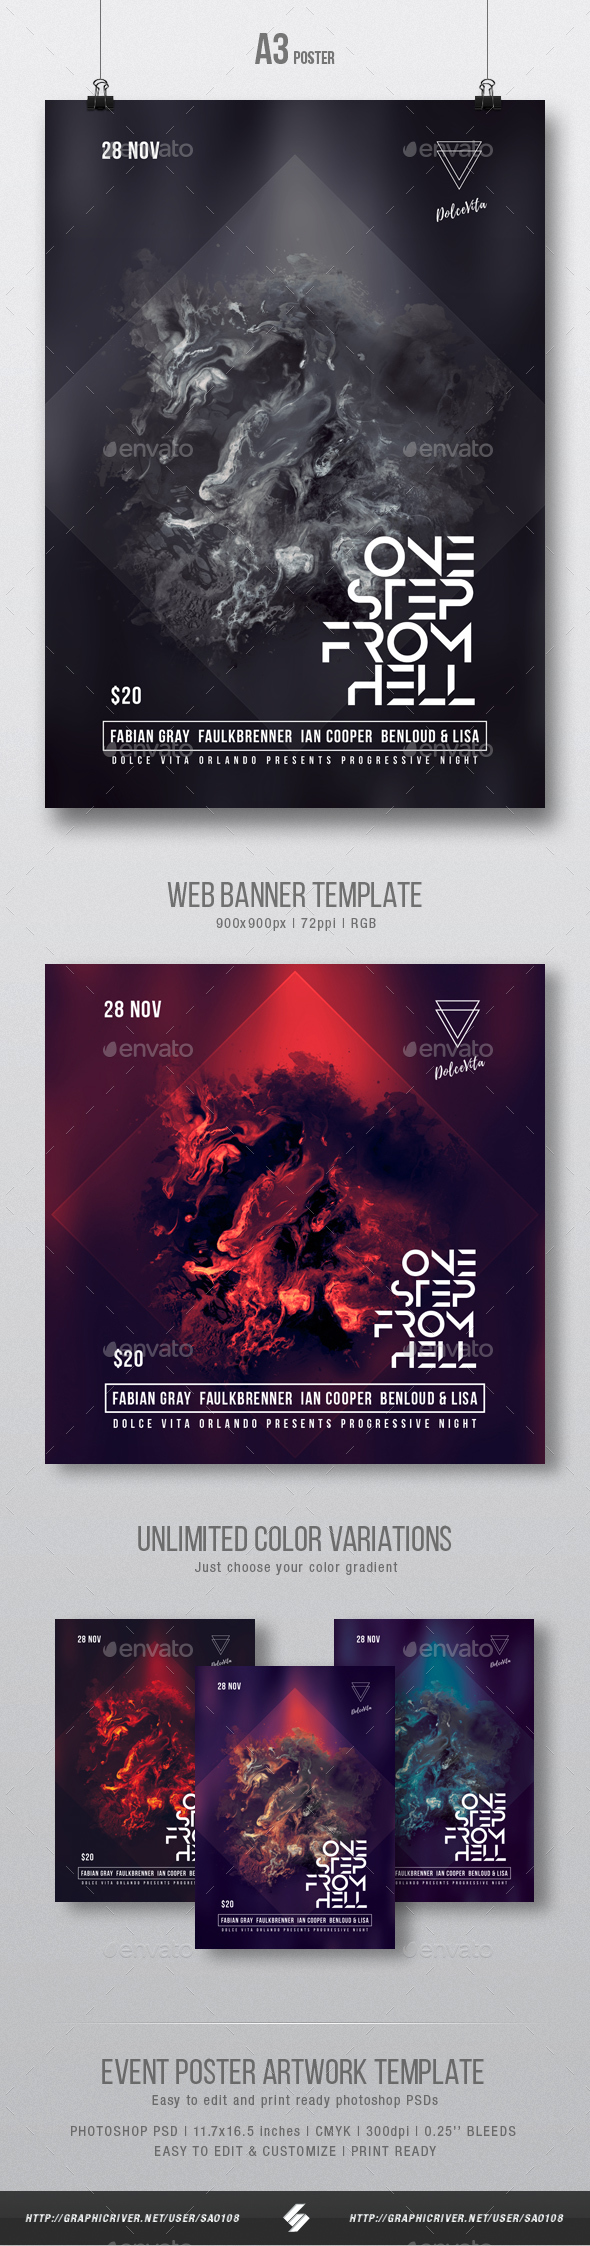 One Step From Hell - Abstract Party Flyer / Poster Artwork Template A3 - Clubs & Parties Events